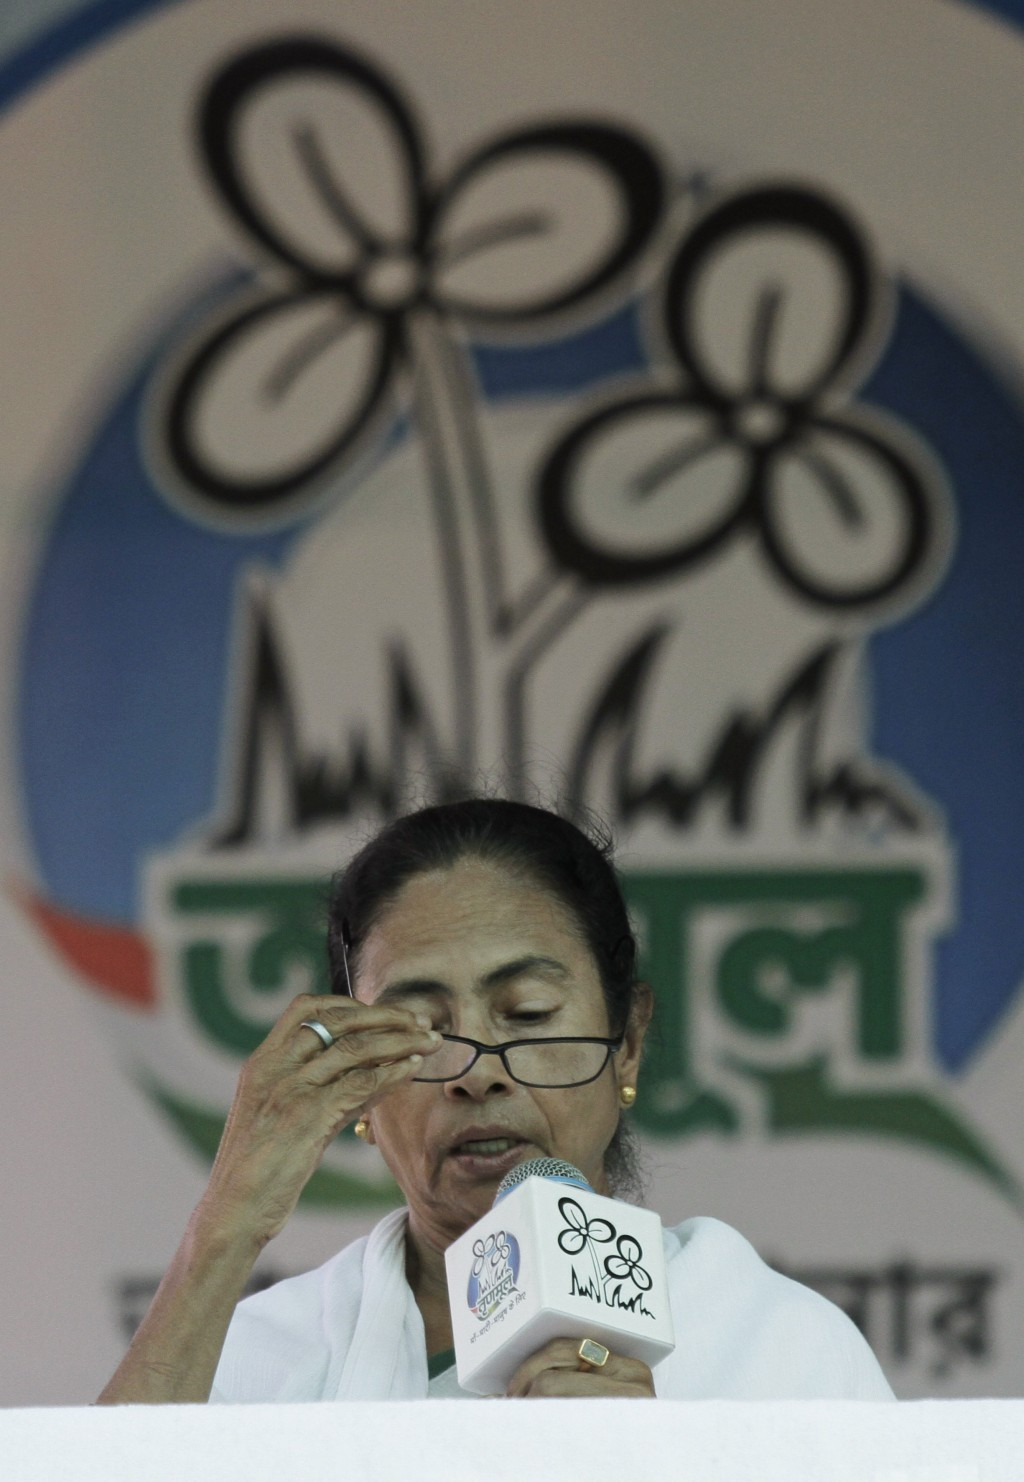 Trinamool Congress leader and Chief Minister of West Bengal state Mamata Banerjee speaks during an election rally at Anchana in Mathurapur, about 60 k